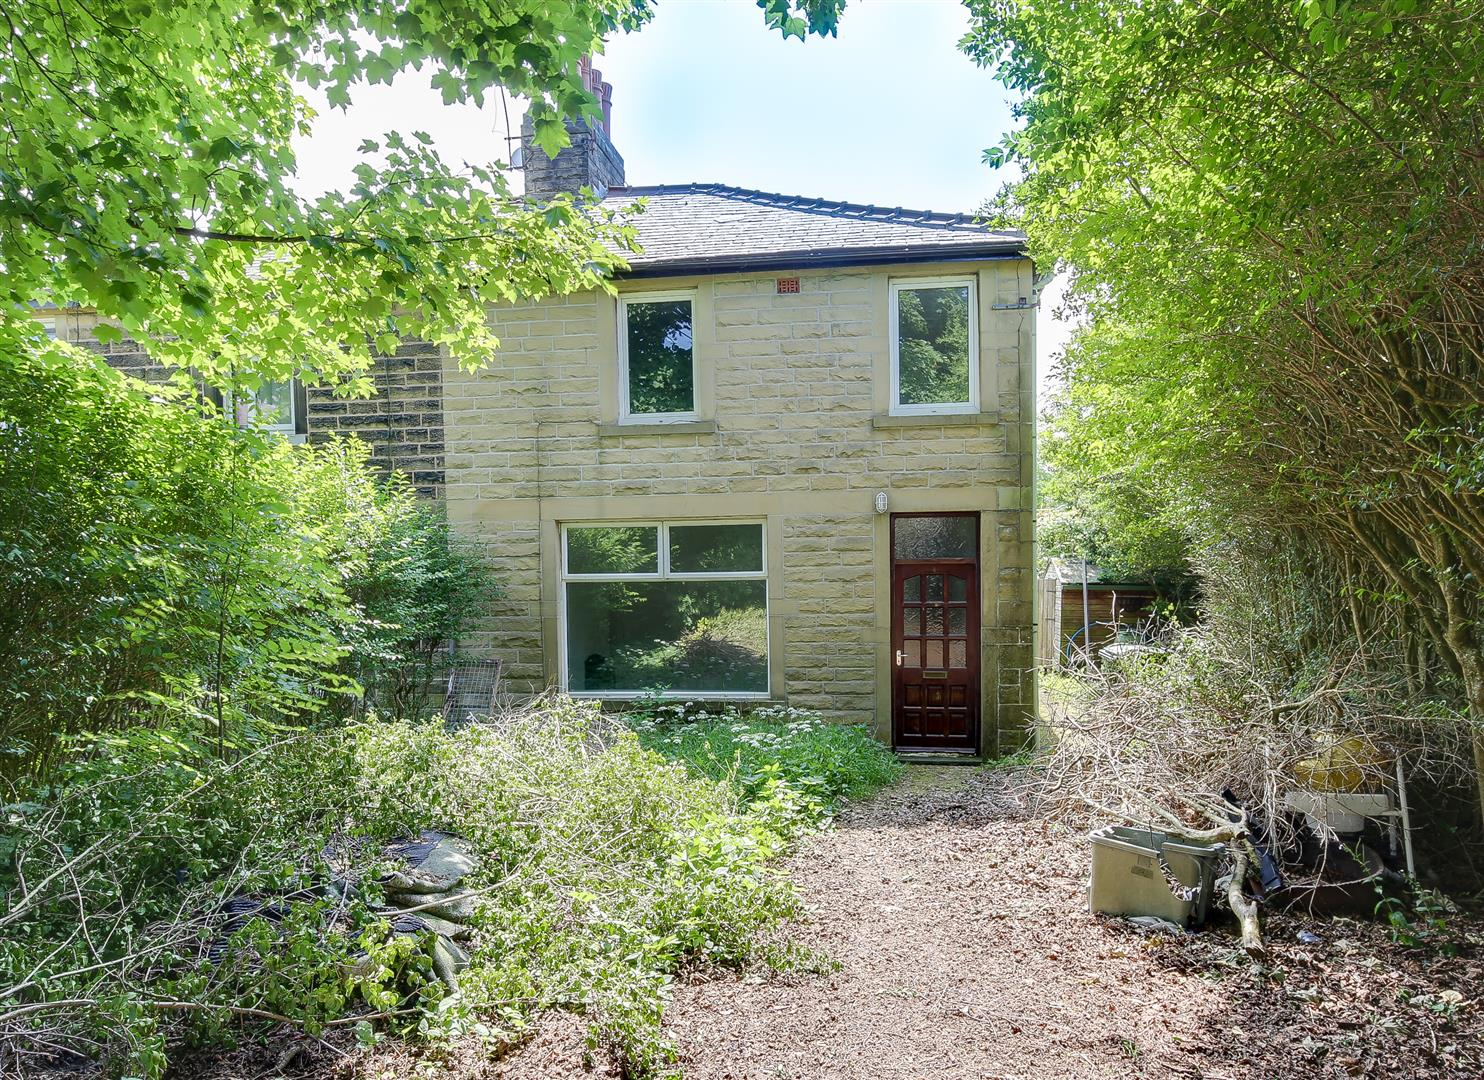 3 Bedrooms House for sale in Barritt Road, Rawtenstall, Rossendale